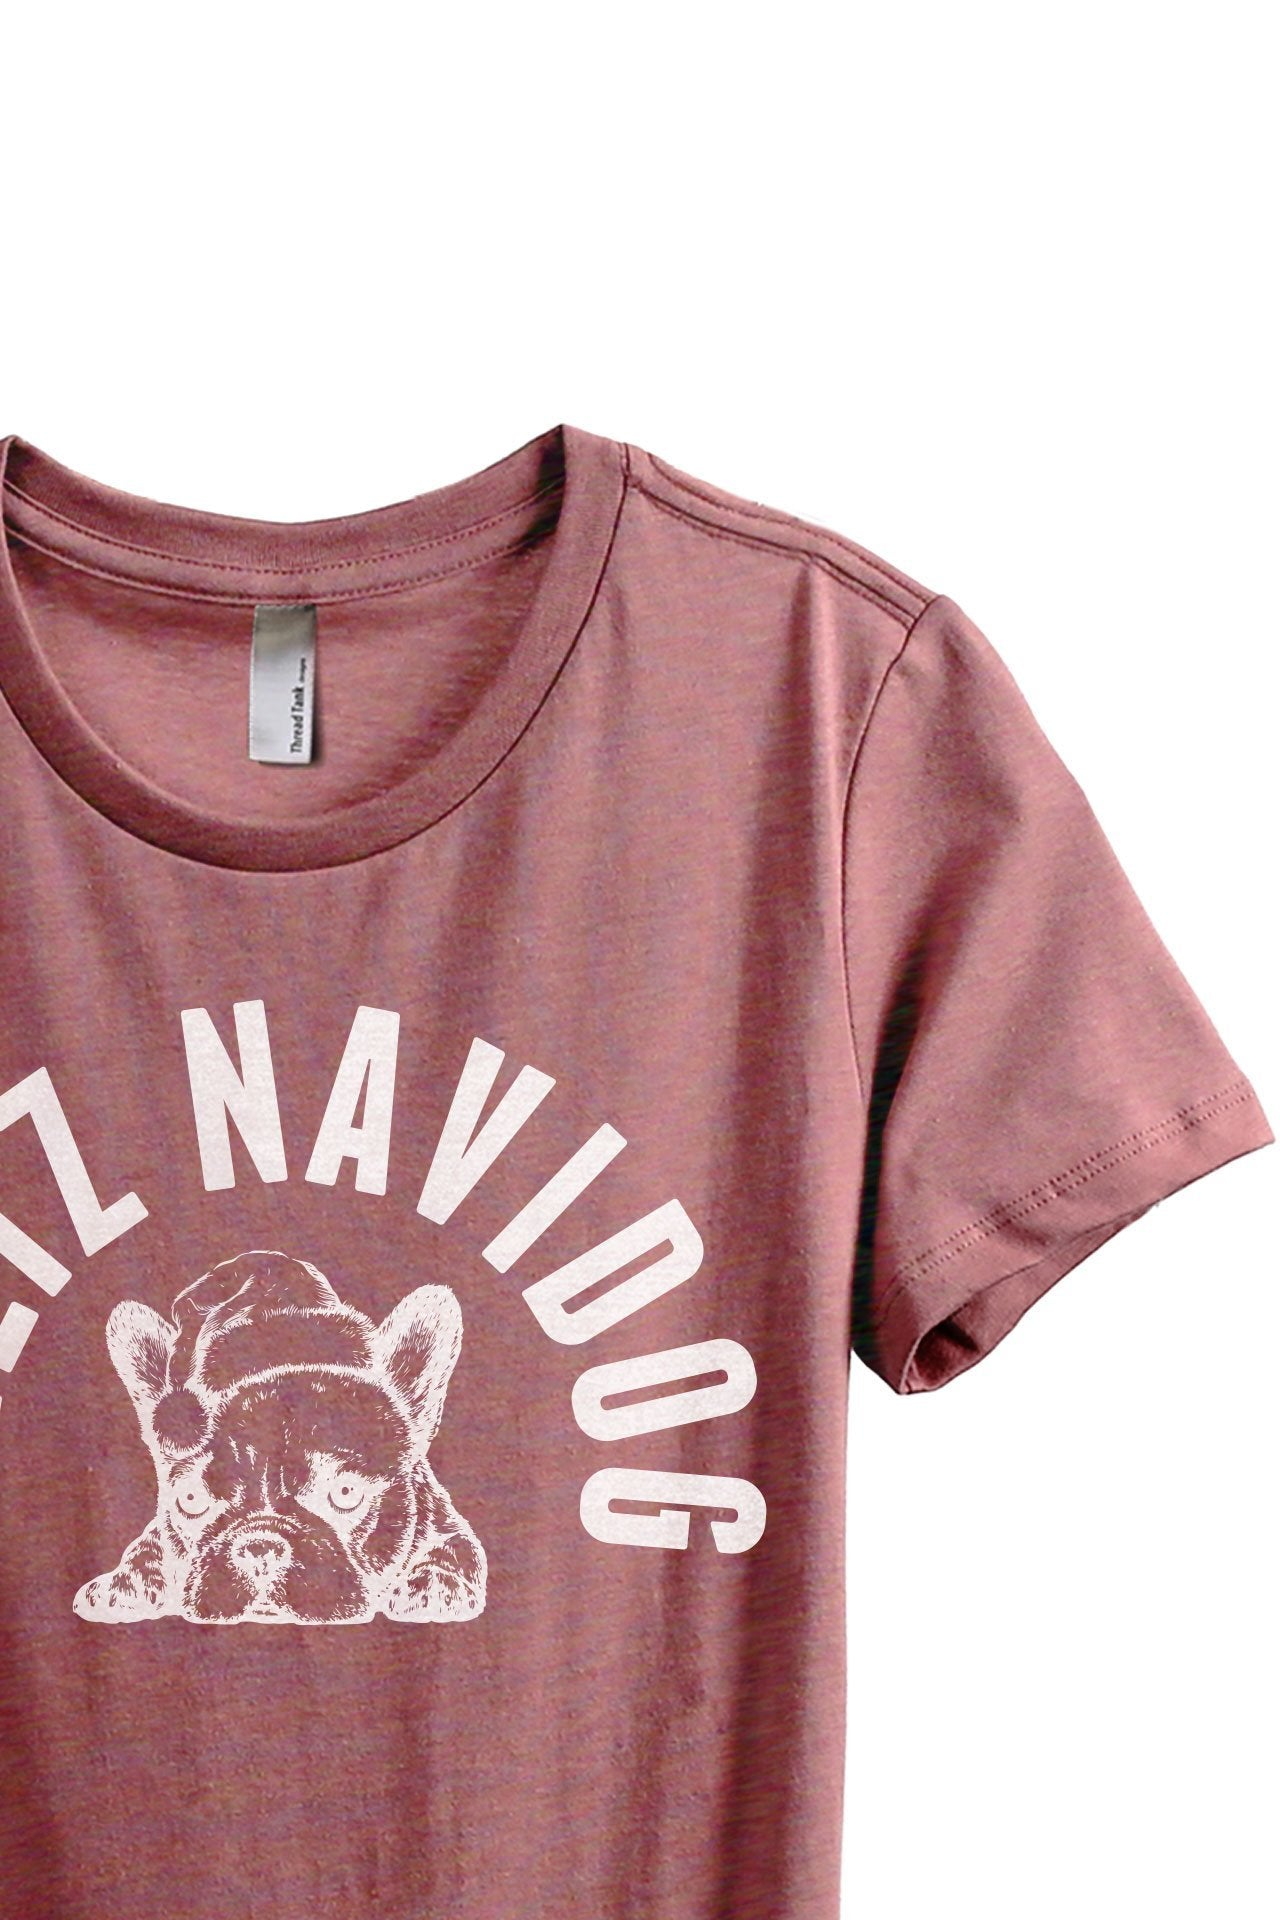 Feliz Navidog Women's Relaxed Crewneck T-Shirt Top Tee Heather Rouge